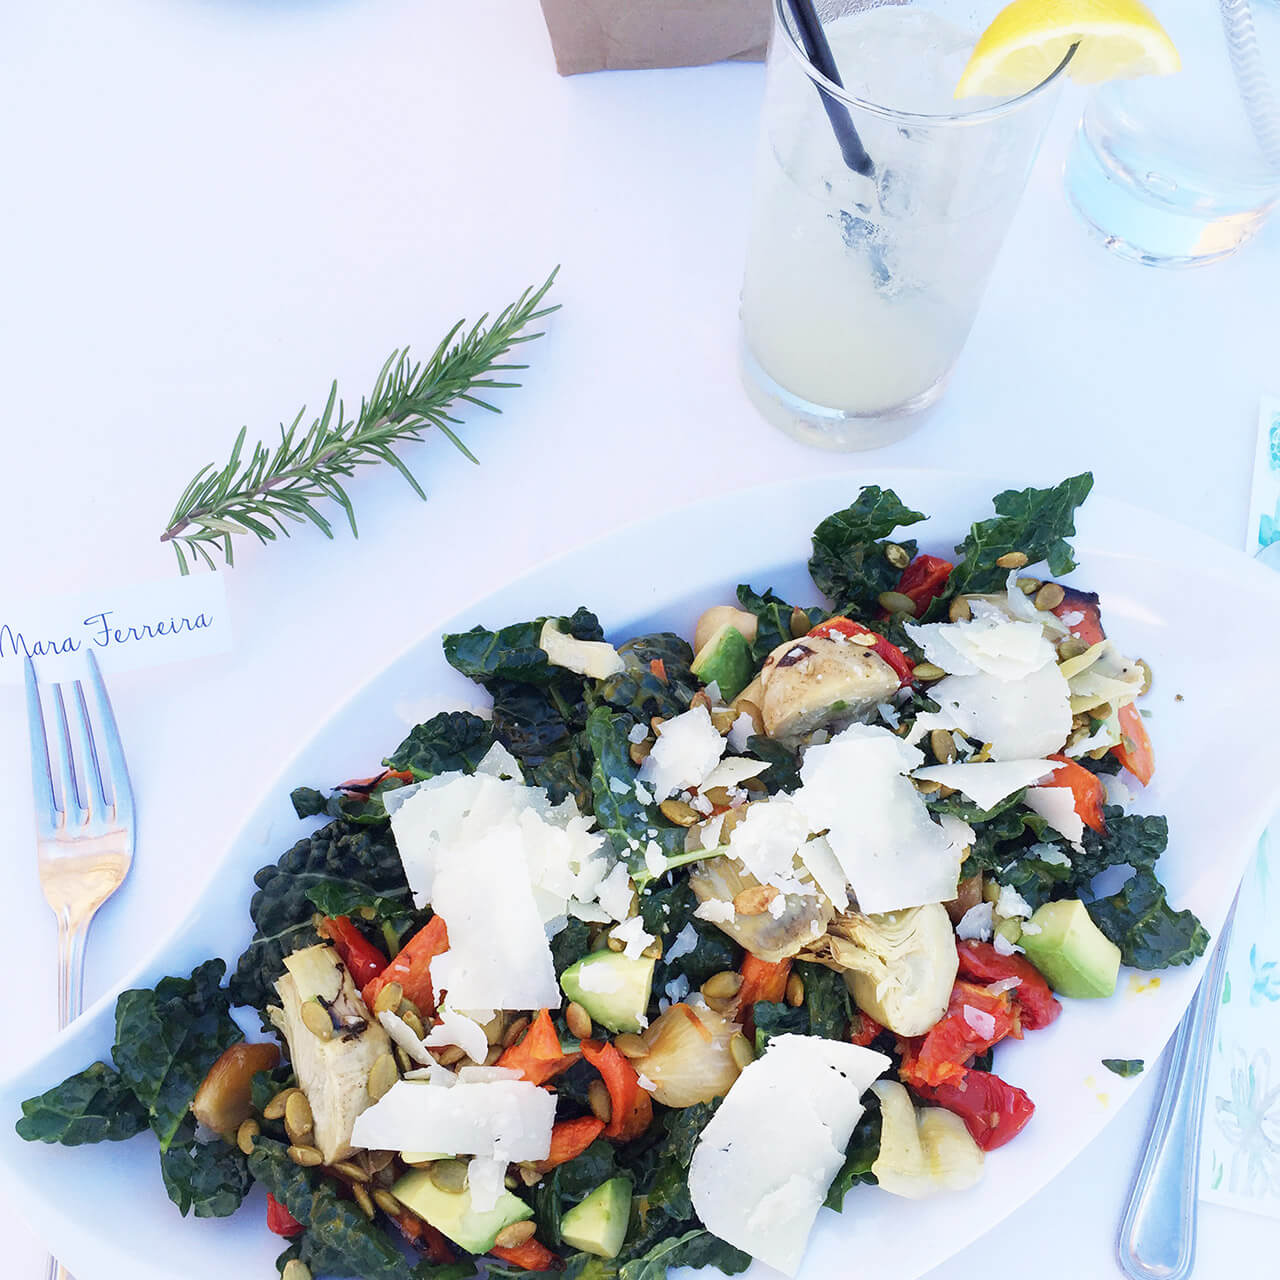 a delicious kale and avocado salad with artichoke hearts, carrots, and parmesan